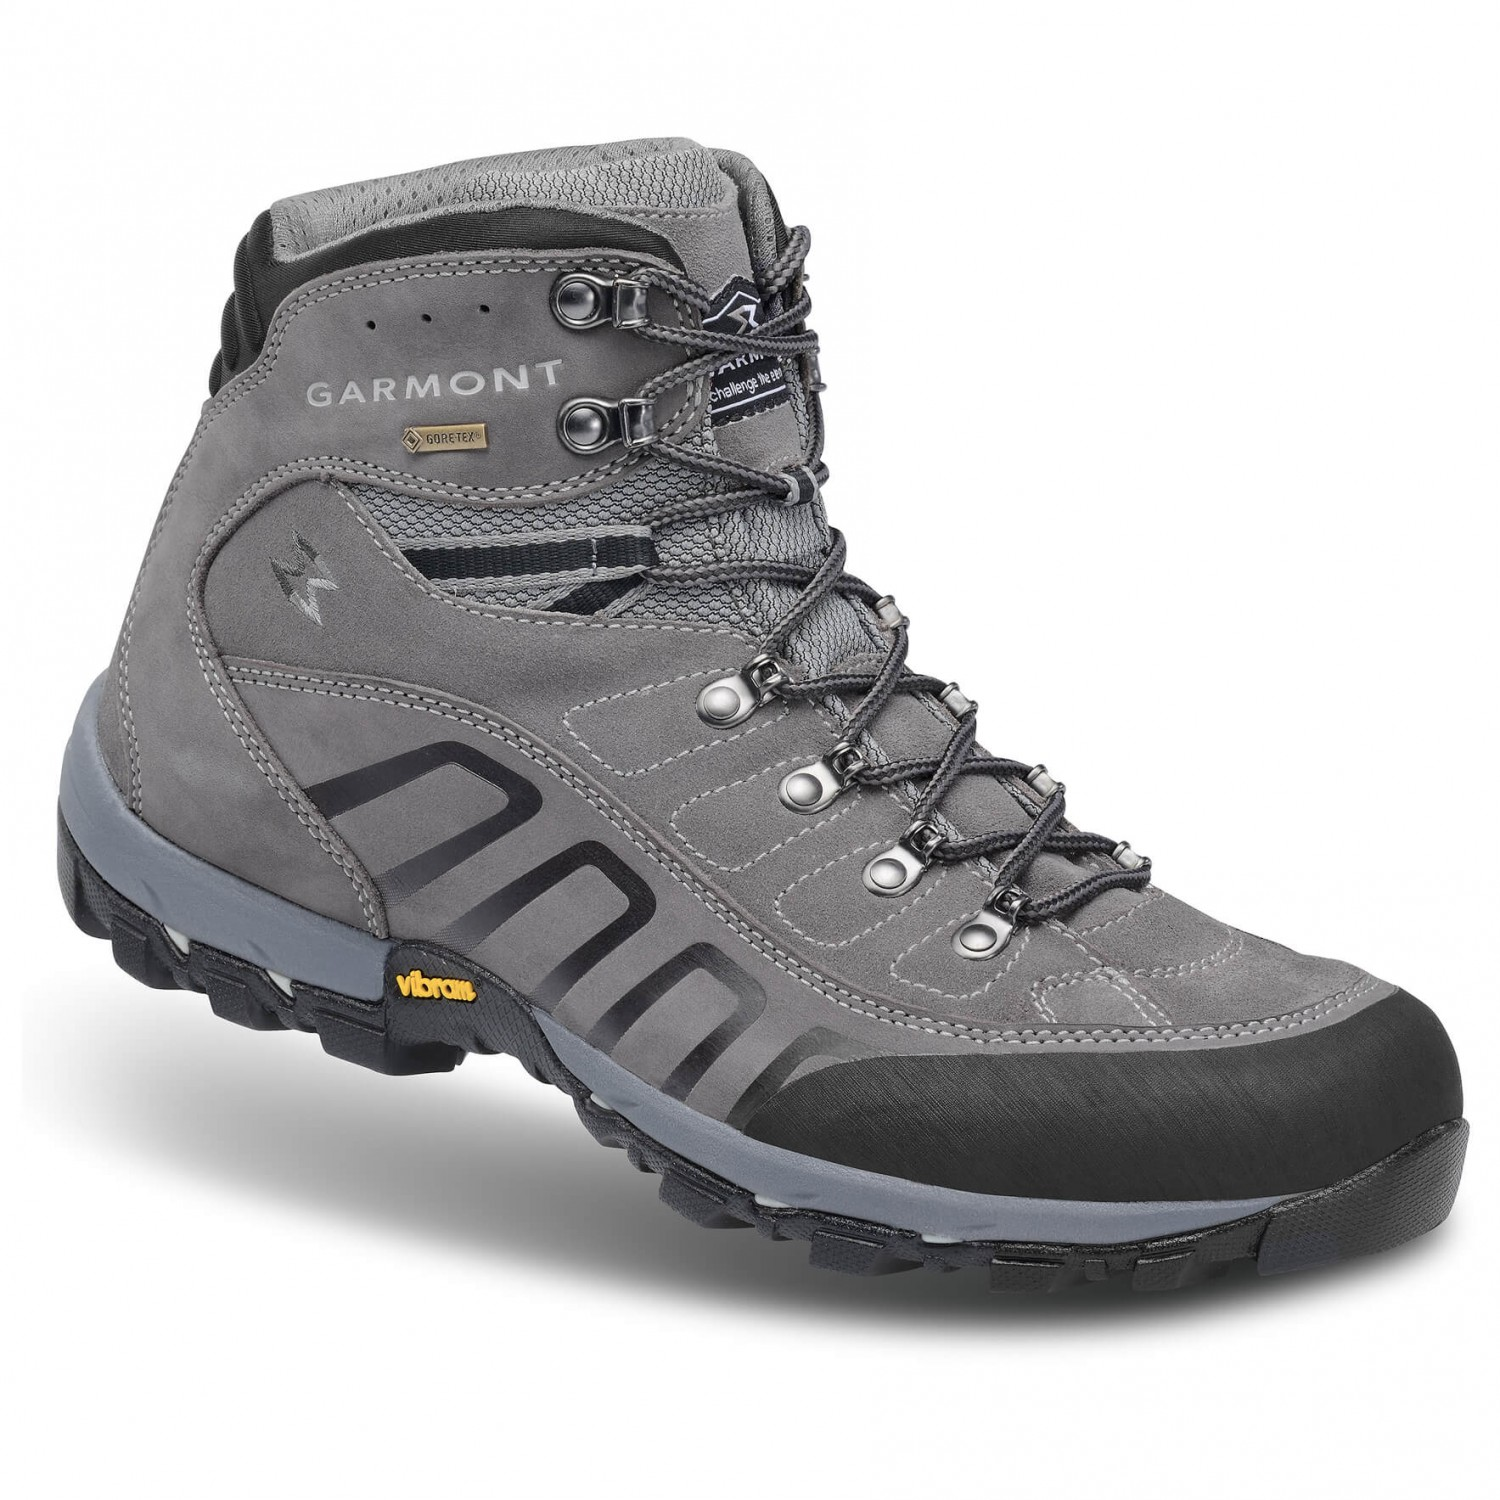 garmont trail guide gtx walking boots s buy